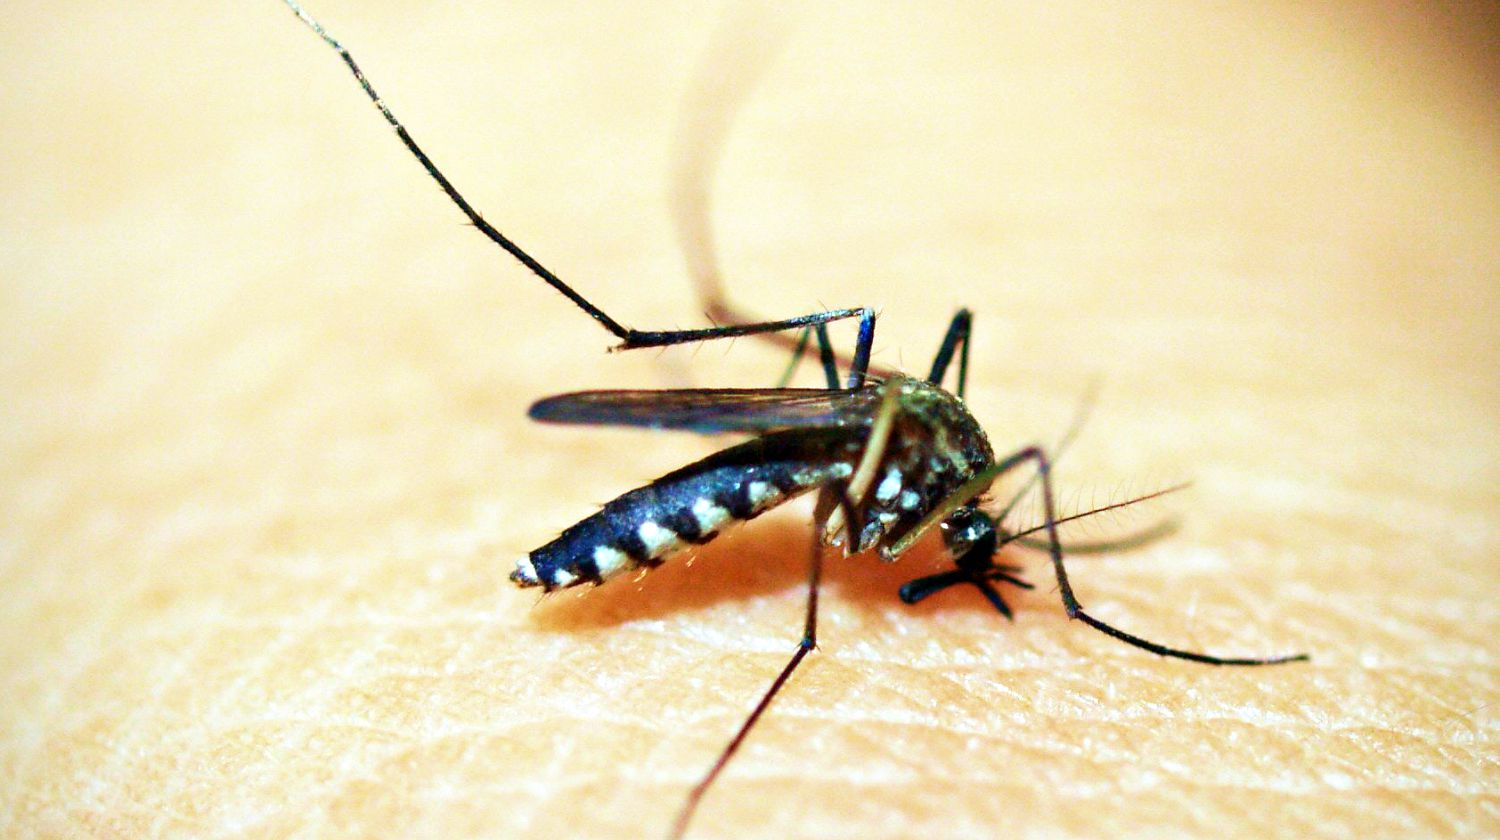 Feature | Black mosquito on person's skin | Protect Yourself Against Mosquitoes